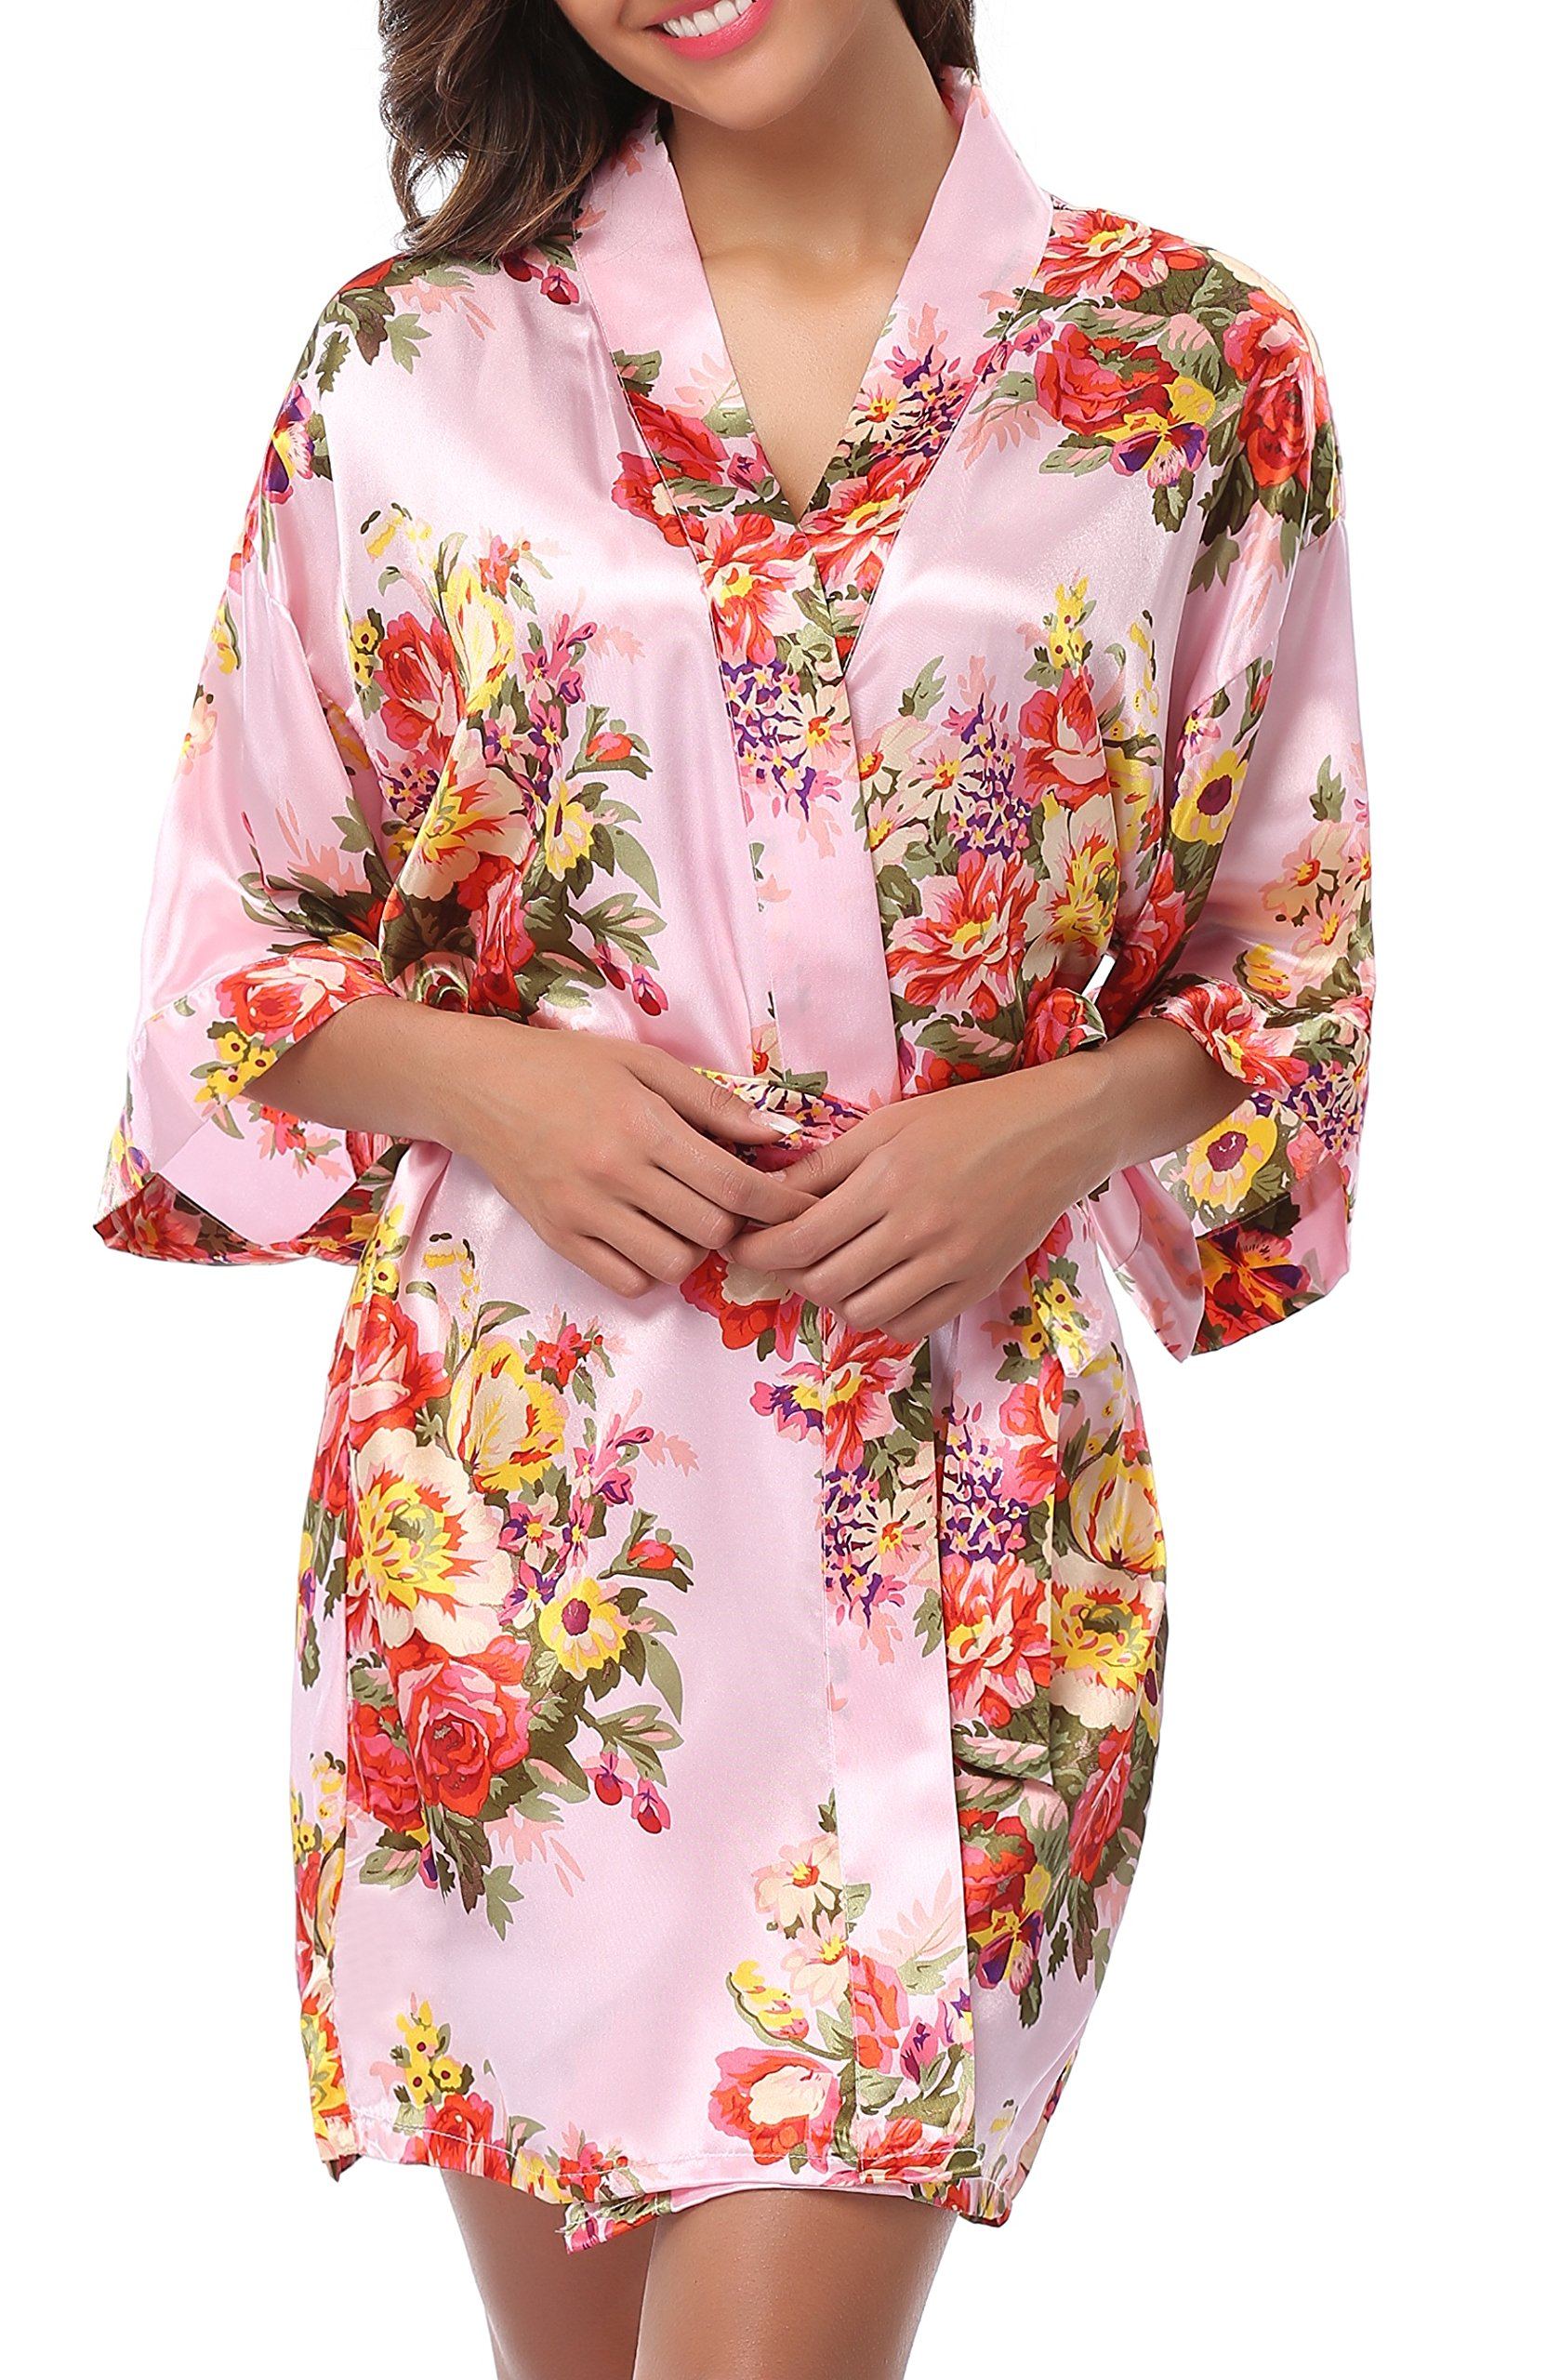 1stmall Floral Satin Kimono Short Style Bridesmaids Robes for Women Pink-L